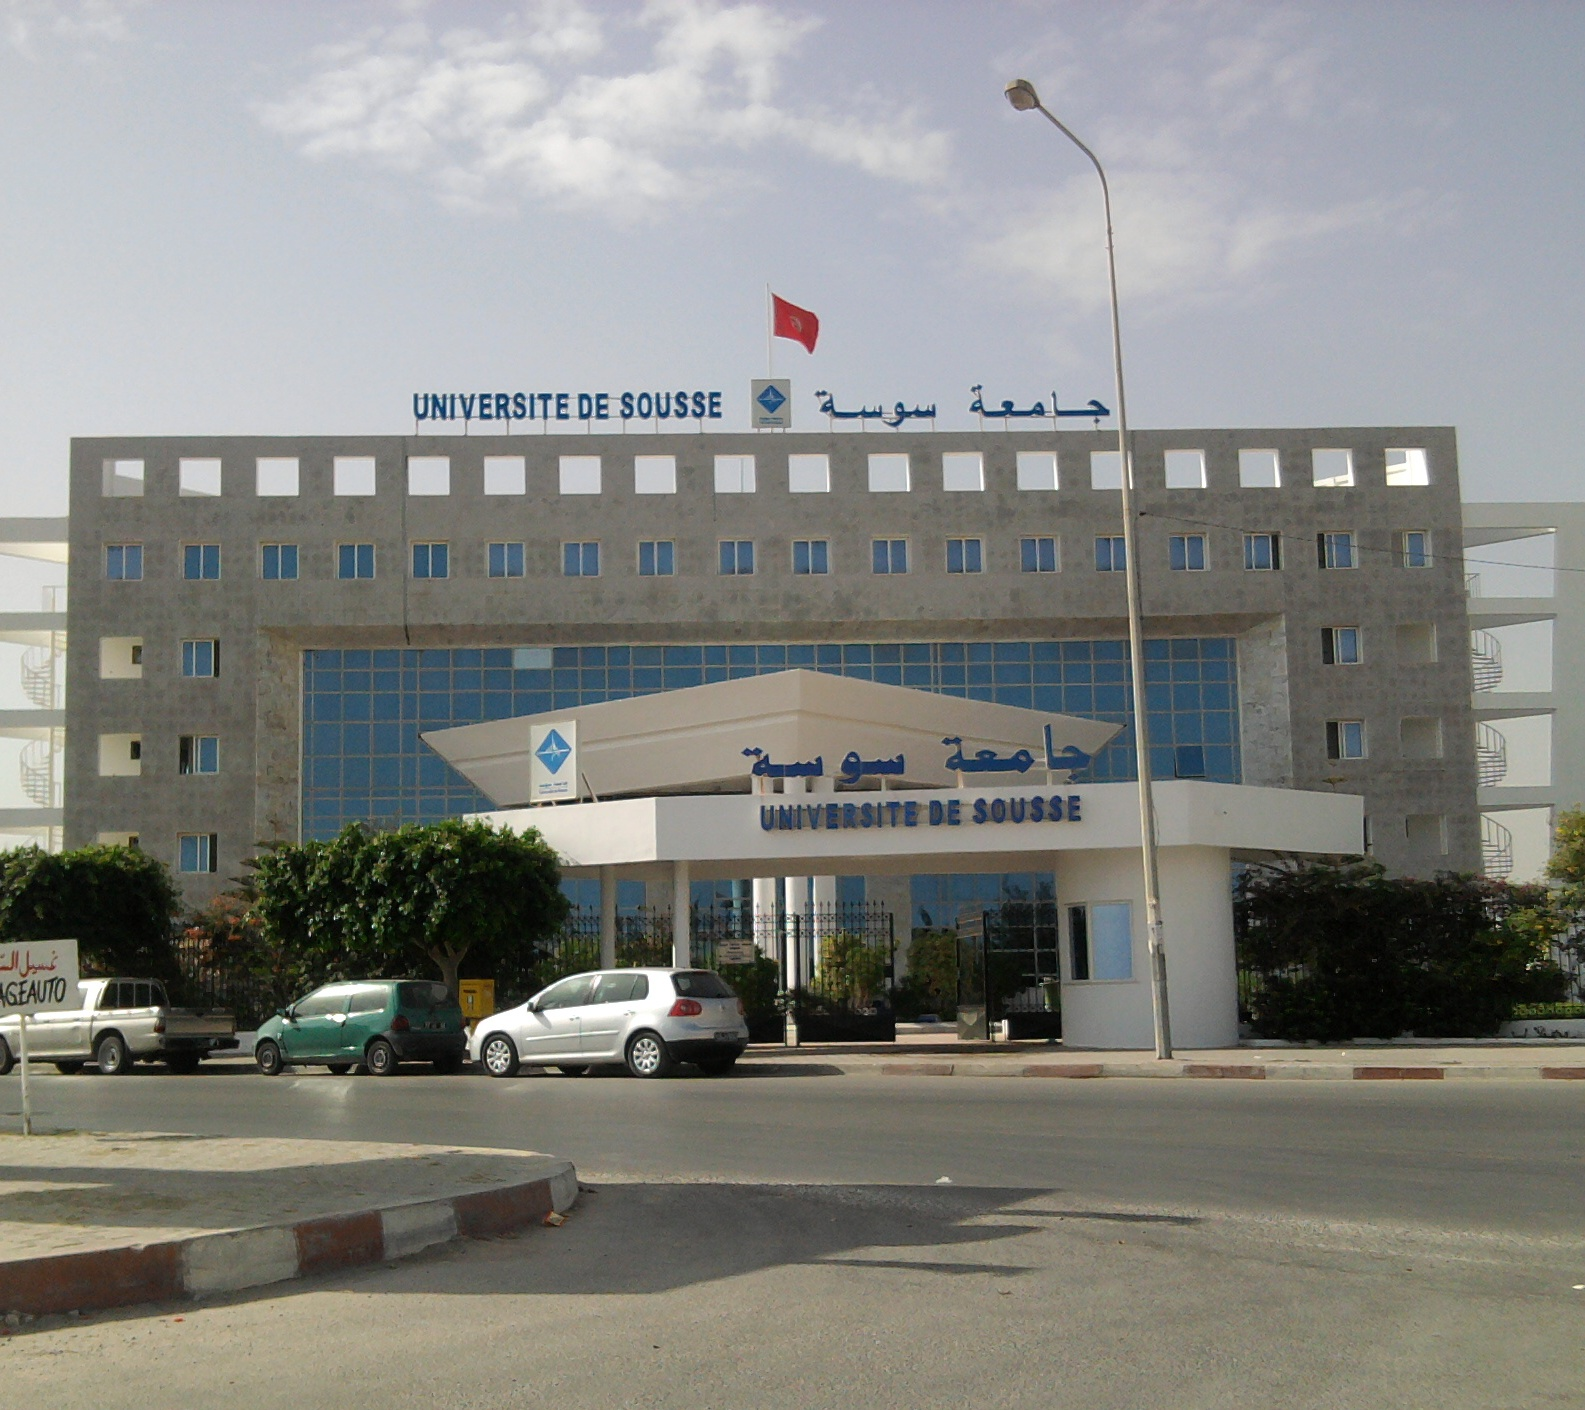 Tunisie Université de Sousse.jpg